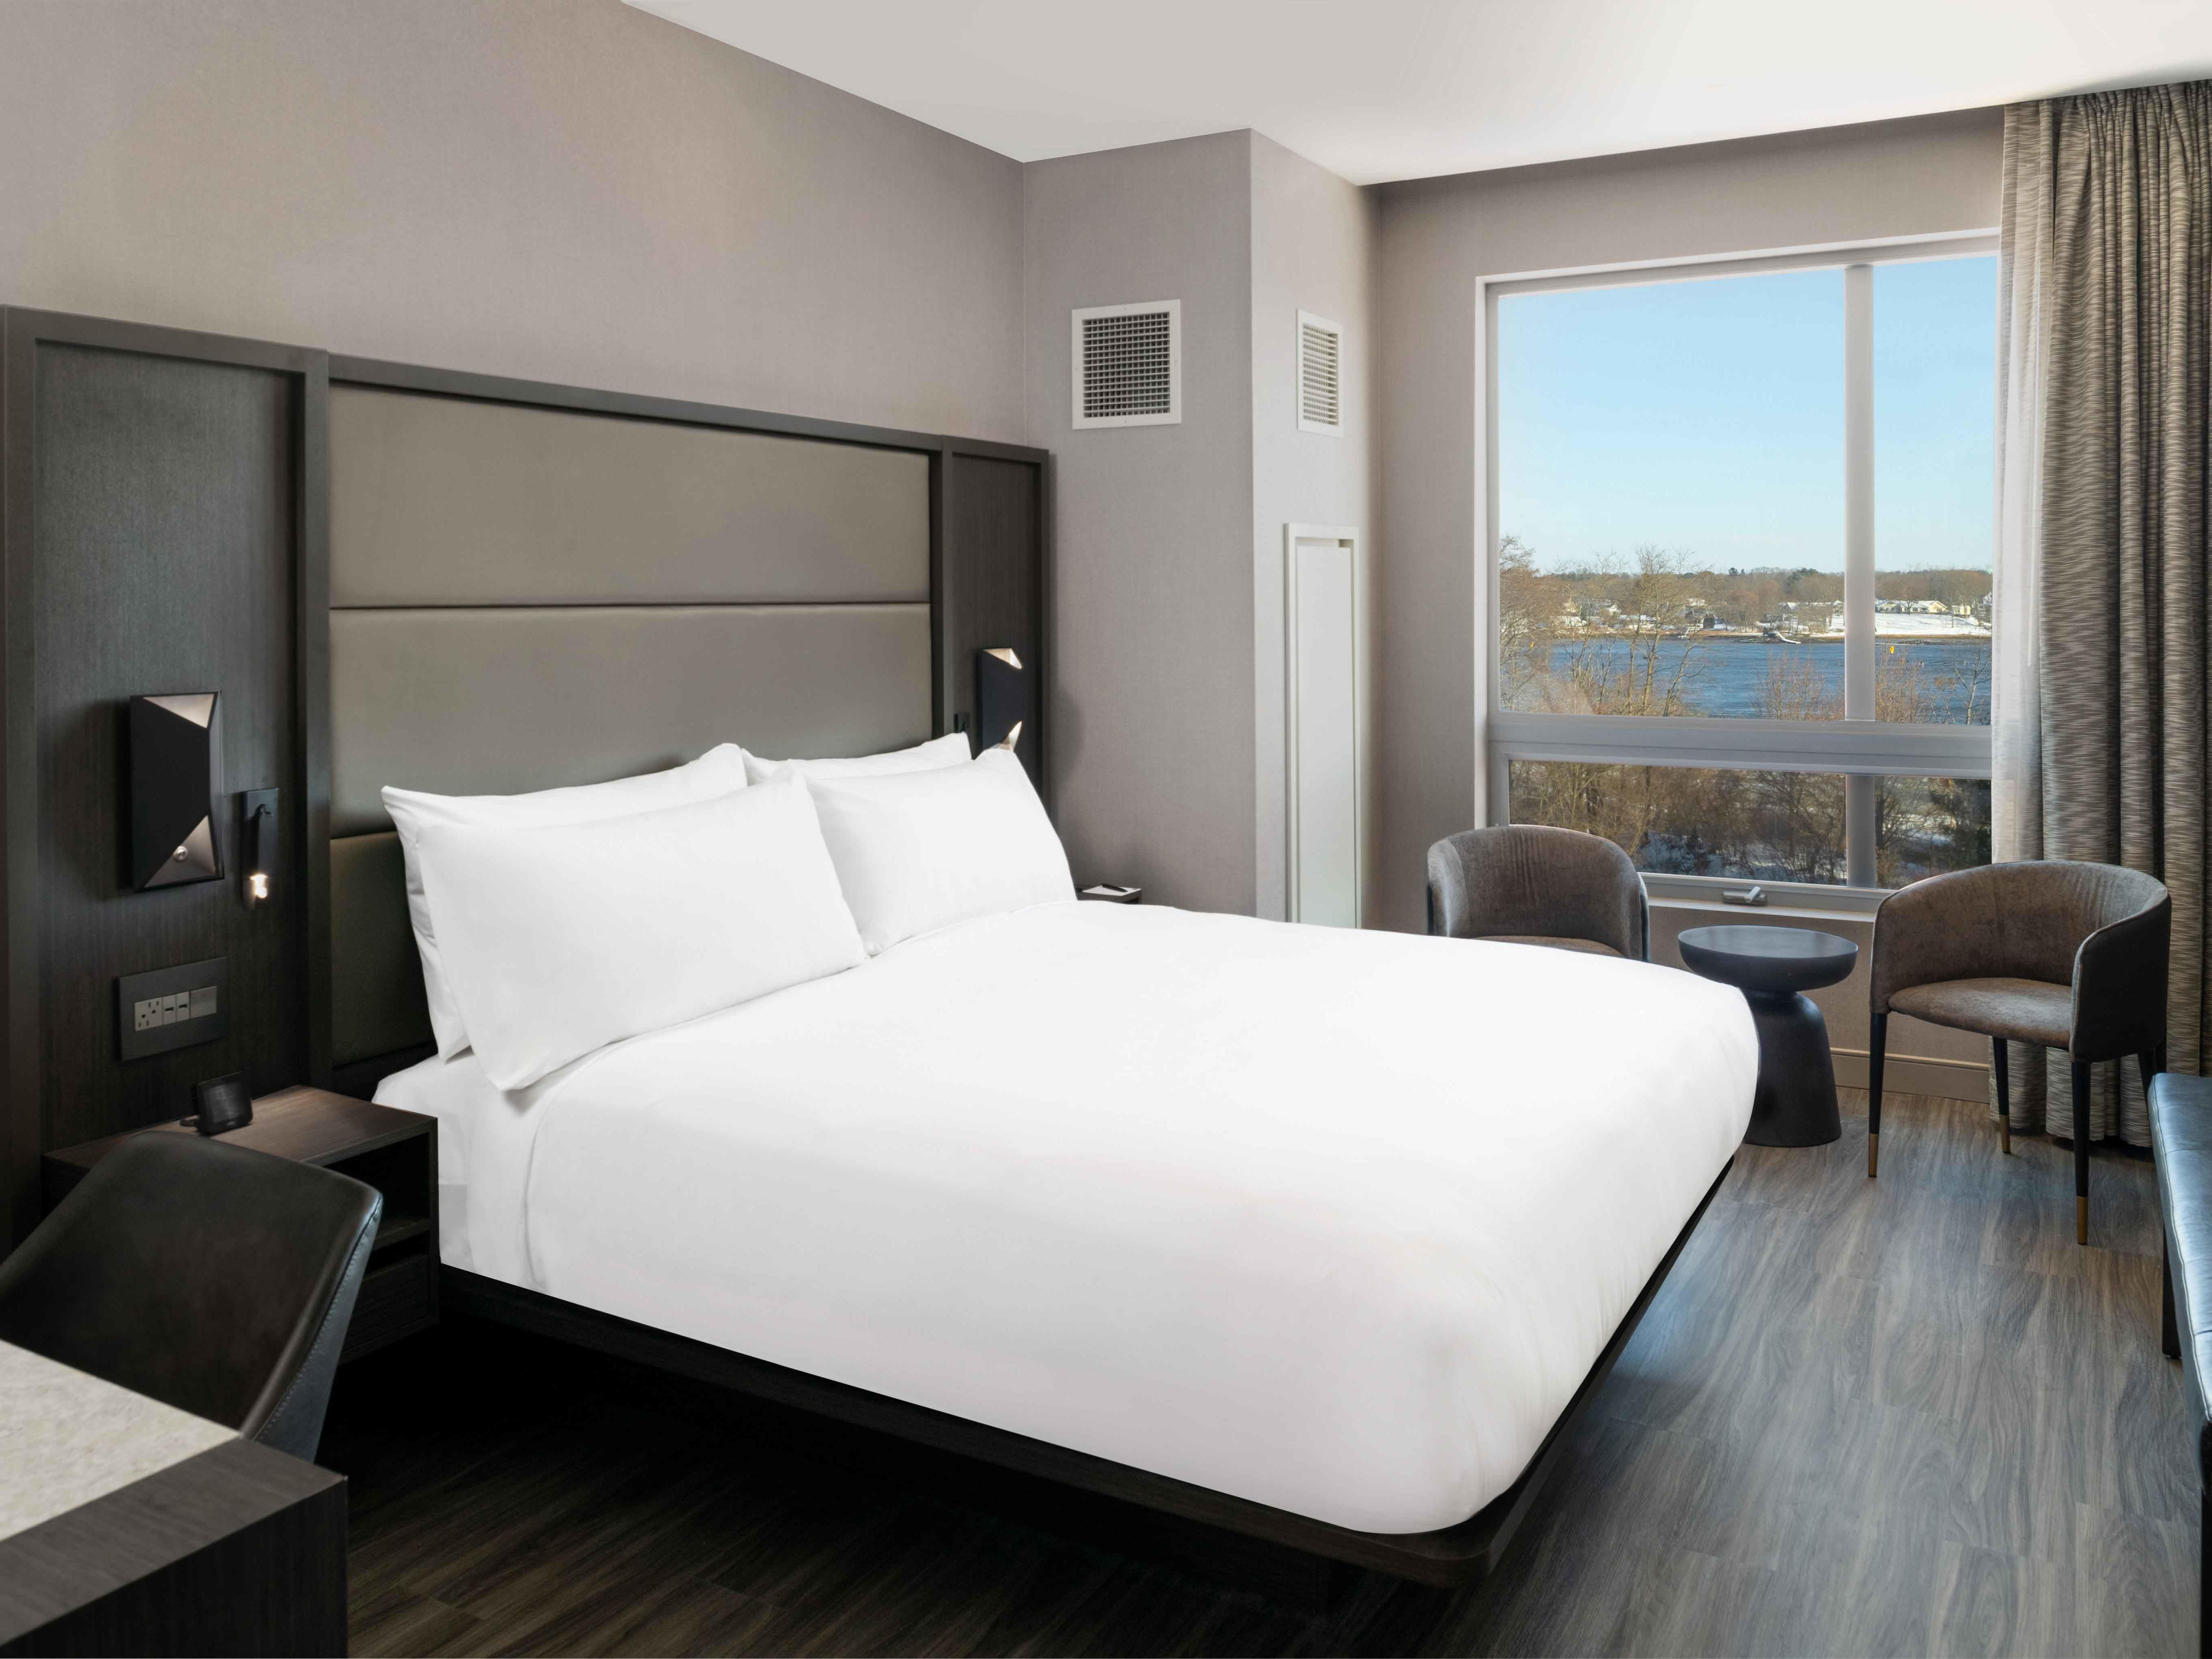 cozy bed in hotel room with water views